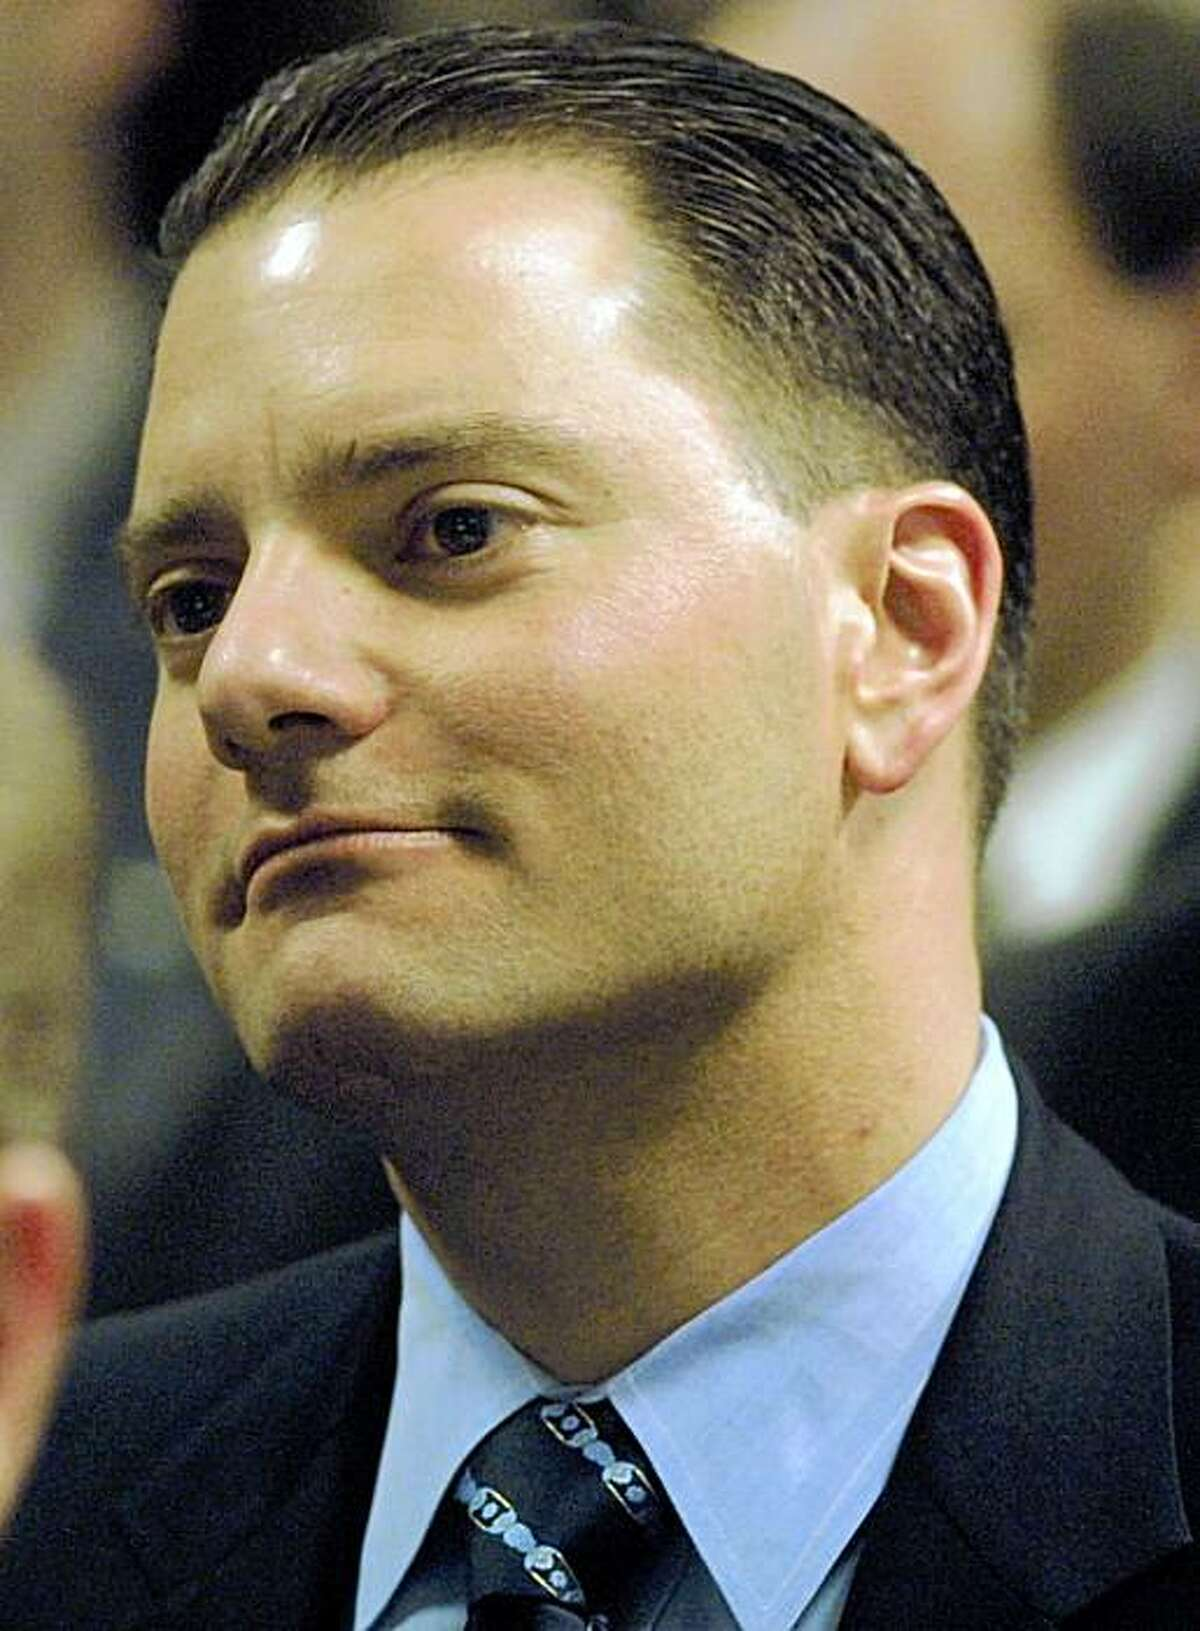 """**FILE** In this Feb. 26, 2002 file photo, William """"Boots"""" del Biaggio III is seen in San Jose, Calif. del Biaggio, a once-high-flying Silicon Valley financier and former co-owner of the NHL's Nashville Predators, was charged Thursday, Dec. 4, 2008, with fraud for allegedly bilking investors out of more than $100 million. (AP Photo/San Jose Mercury News, Rick E. Martin) ** MAGS OUT, NO SALES **"""